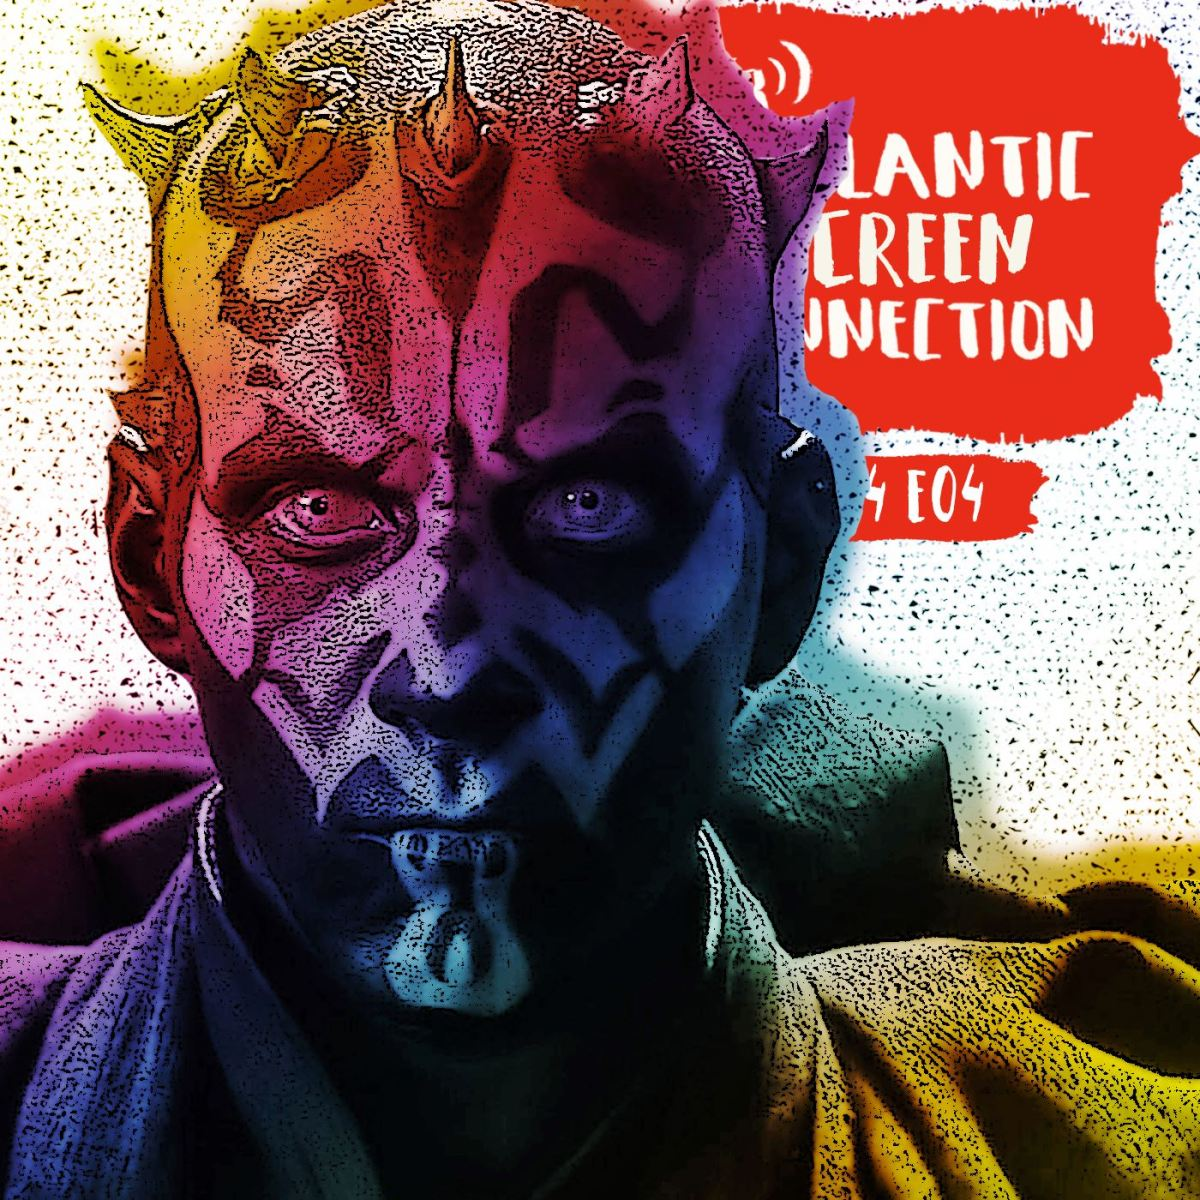 PODCAST: STAR WARS EPISODE I: THE PHANTOM MENACE